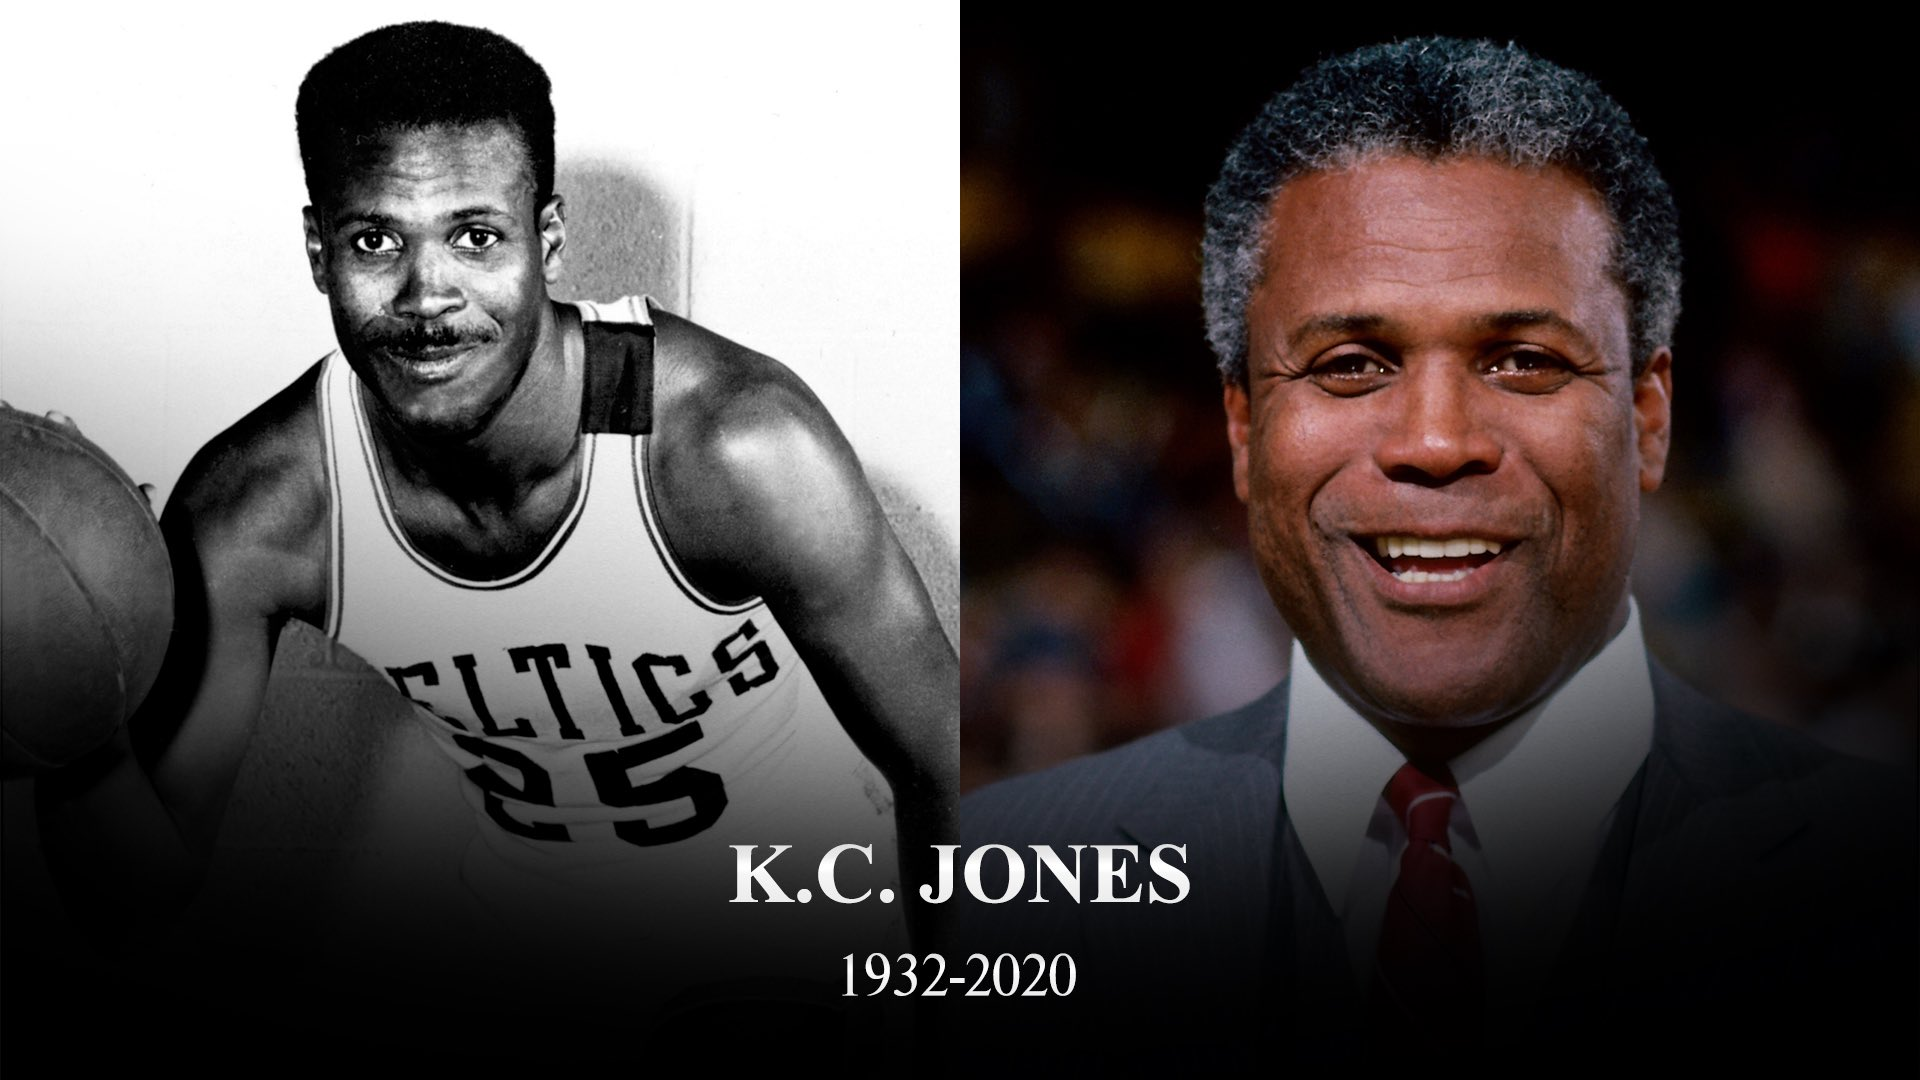 Celtics legend K.C. Jones dies at 88